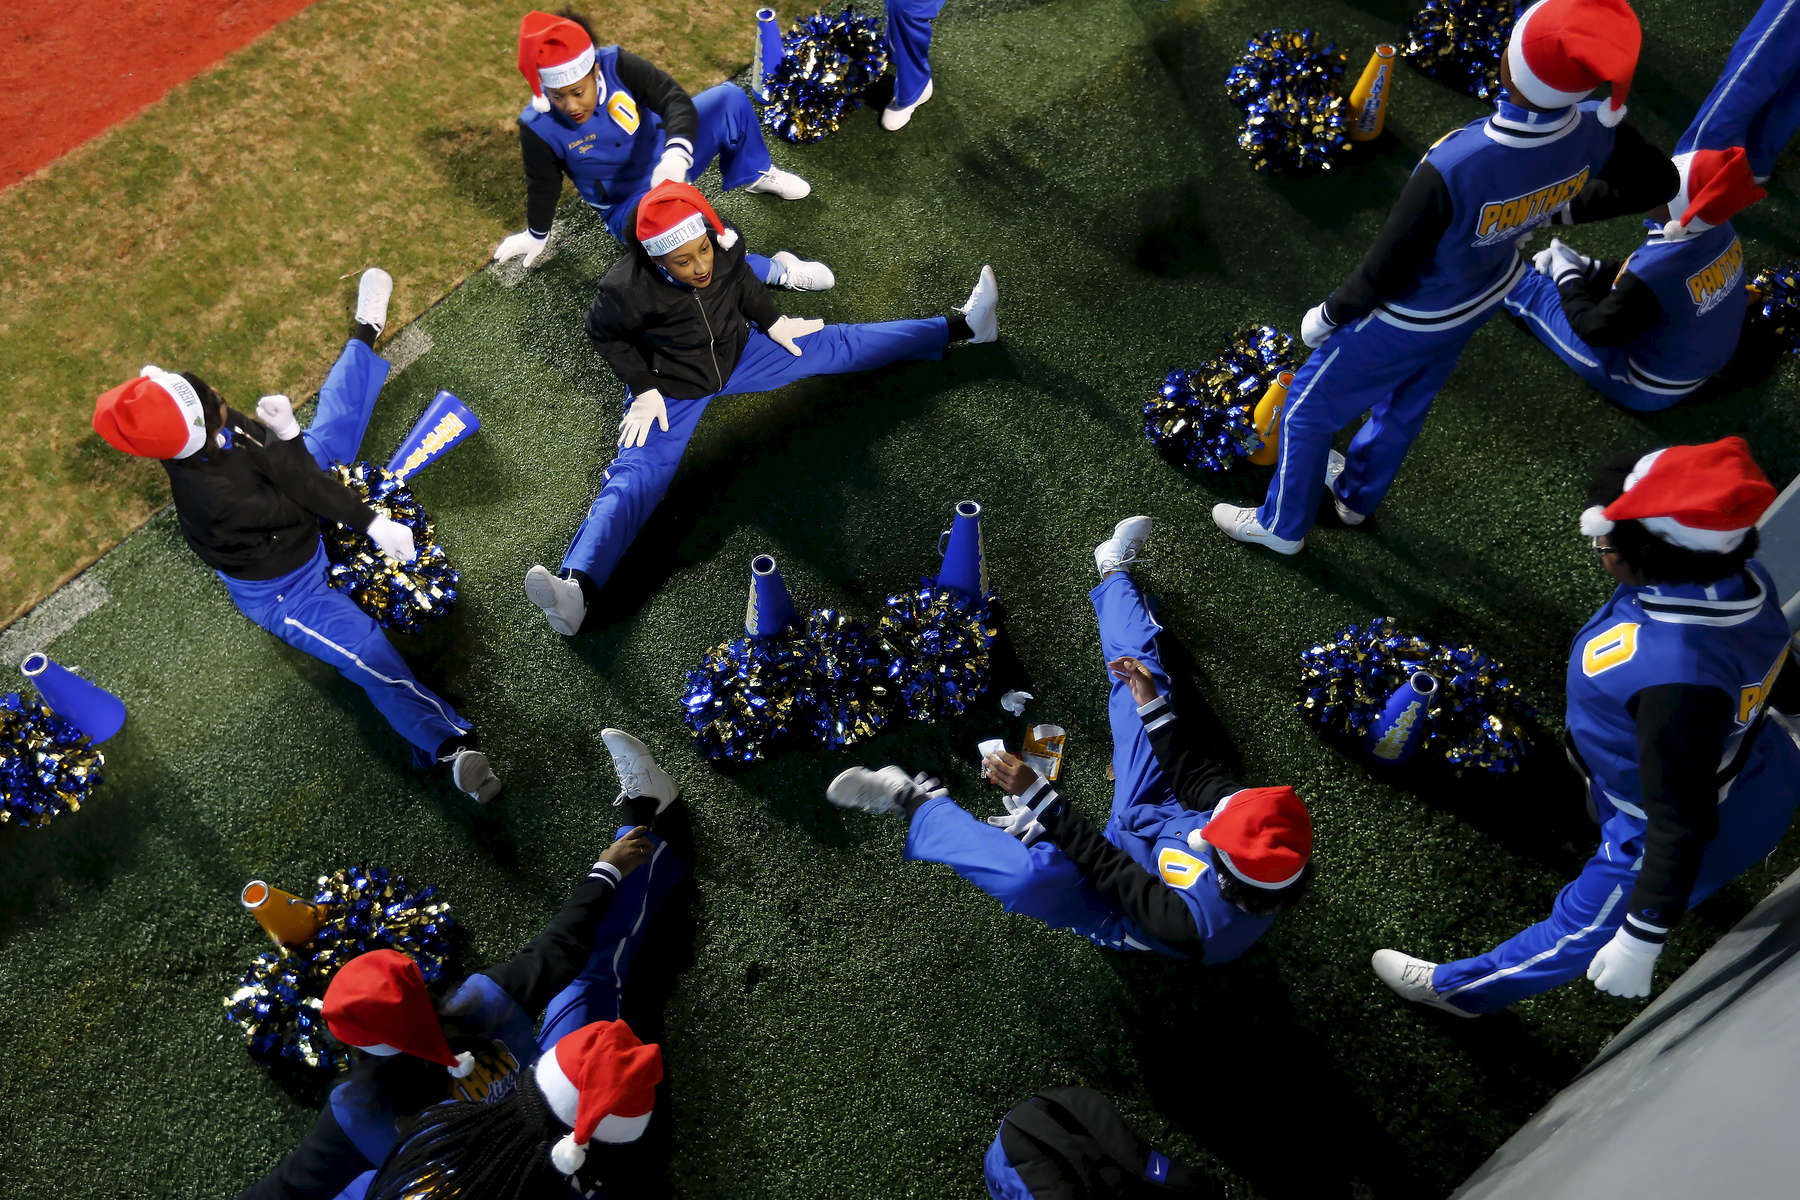 Sports POY: Runner UpEamon Queeney, North State Journal Dudley Panthers cheerleaders stretch before the NCHSAA Division 4A State Championship football game against the Cape Fear Colts at Carter-Finley Stadium in Raleigh, Saturday, December 17, 2016. The Dudley Panthers defeated the Cape Fear Colts 54 - 0.